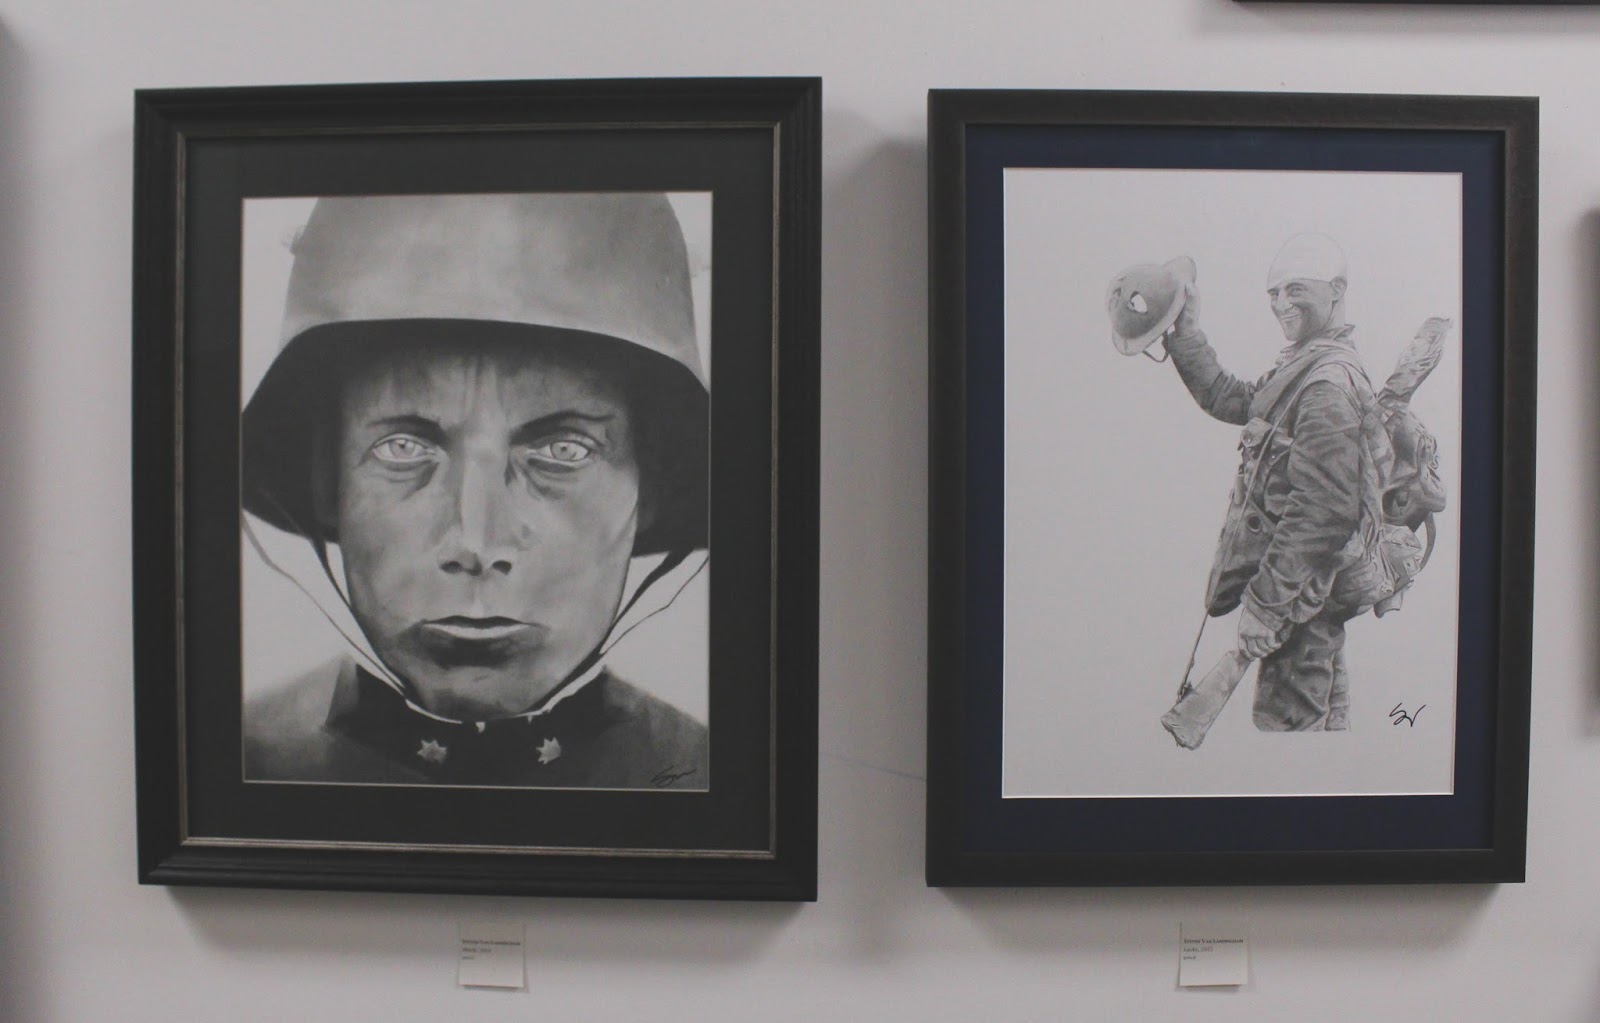 Steven's work is inspired by war stories and veterans.